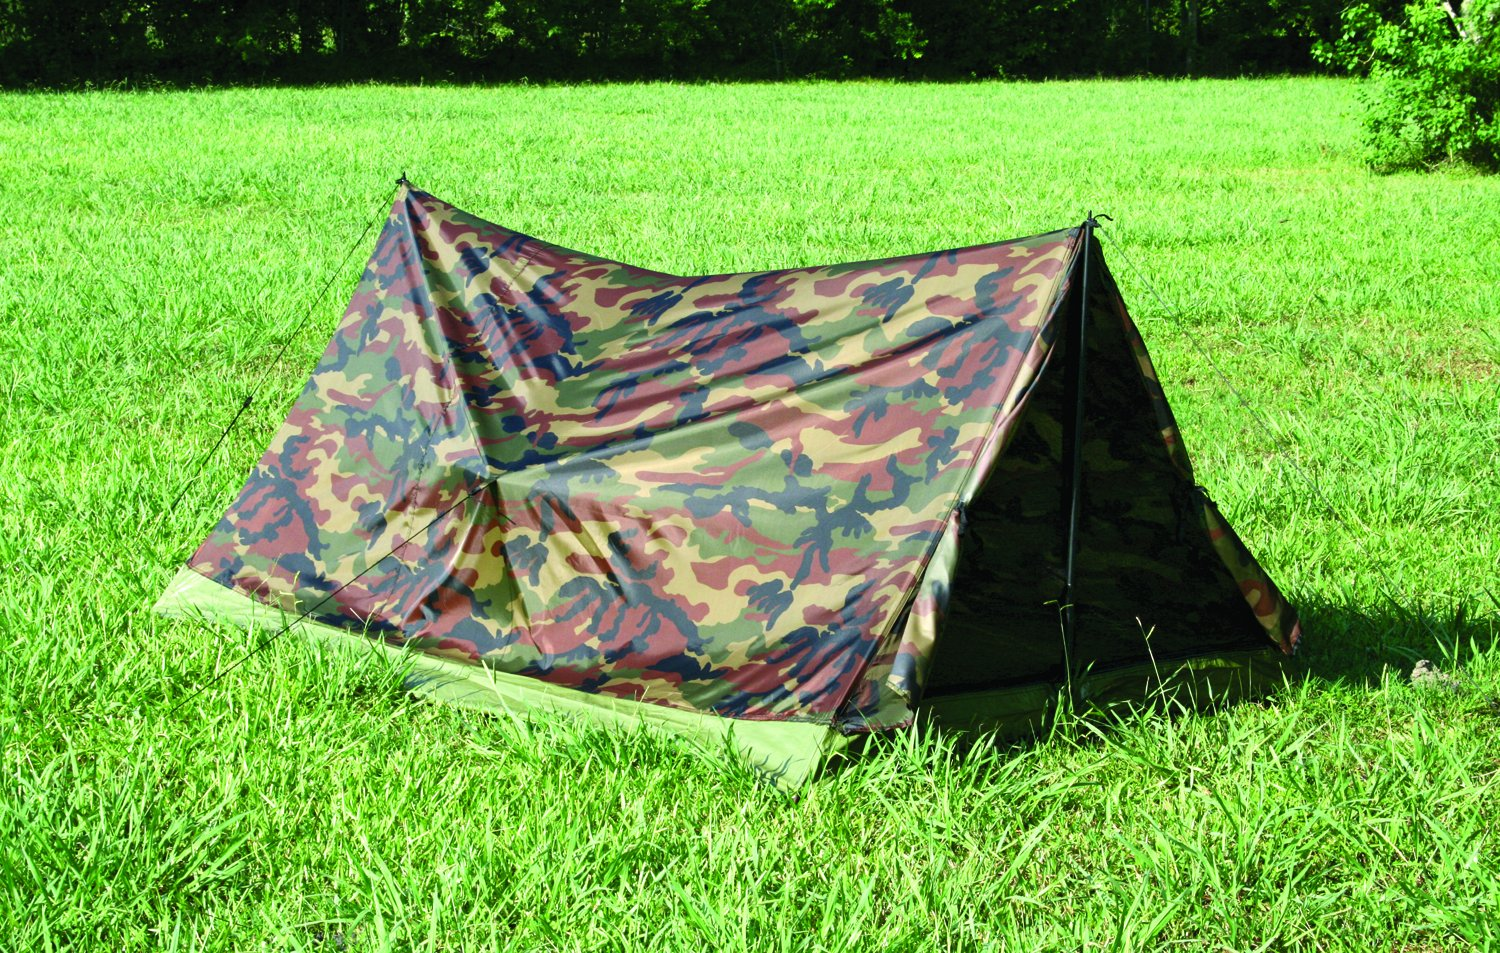 Amazon.com  Texsport 2 Person Camouflage Trail Tent  Backpacking Tent  Sports u0026 Outdoors & Amazon.com : Texsport 2 Person Camouflage Trail Tent : Backpacking ...